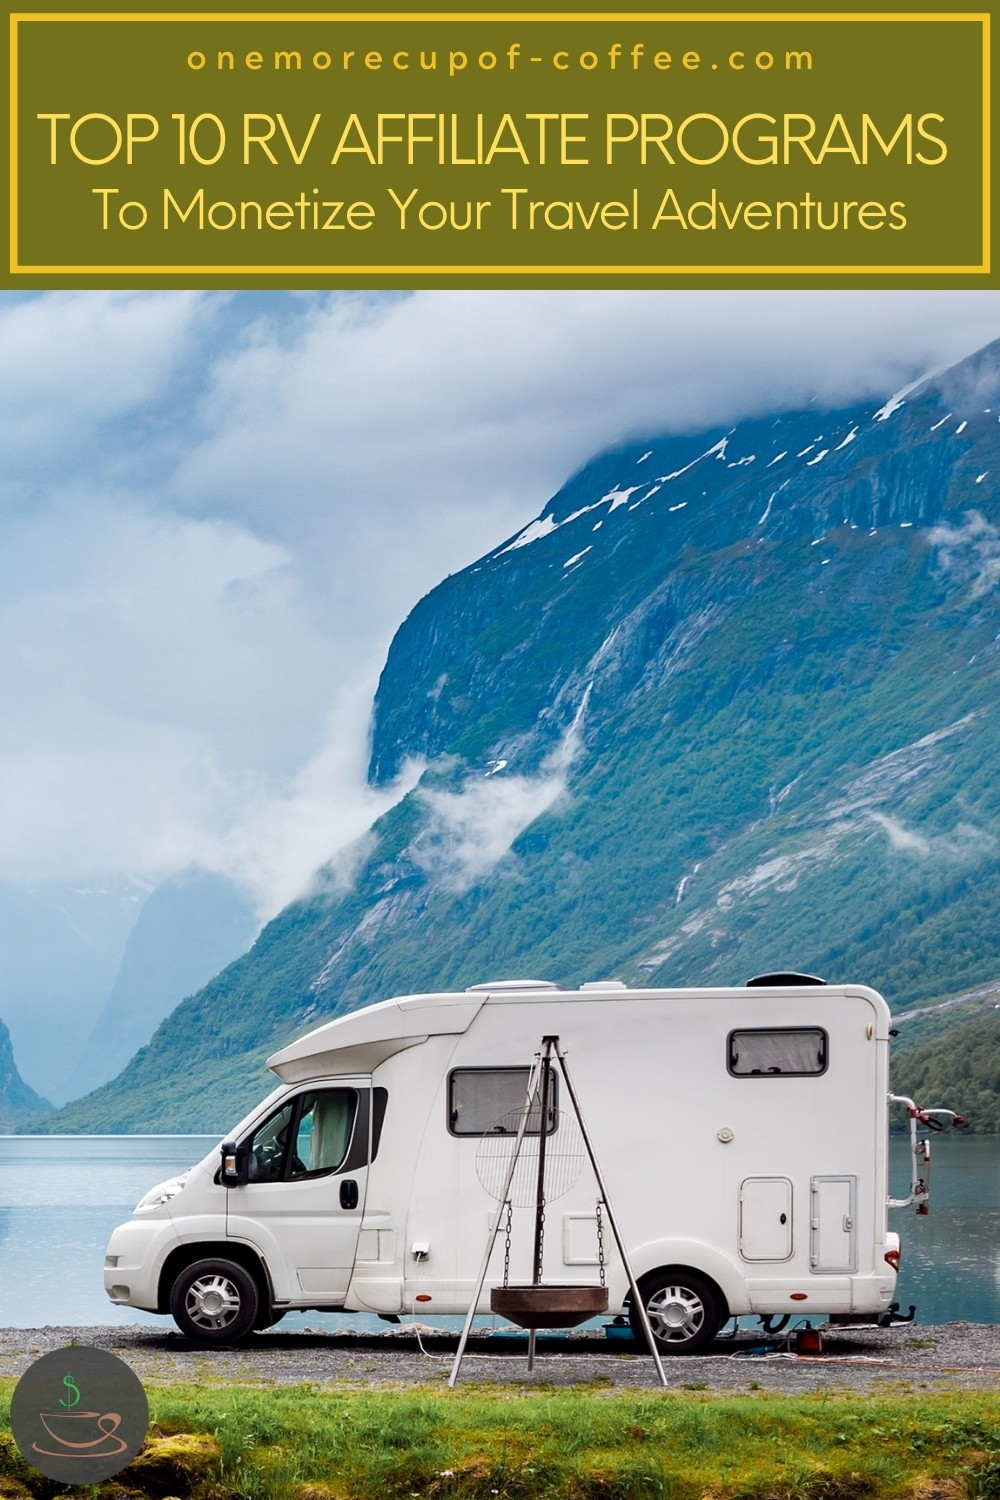 """RV out in a field, with the lake and mountains at the back; with text overlay """"Top 10 RV Affiliate Programs To Monetize Your Travel Adventures"""""""